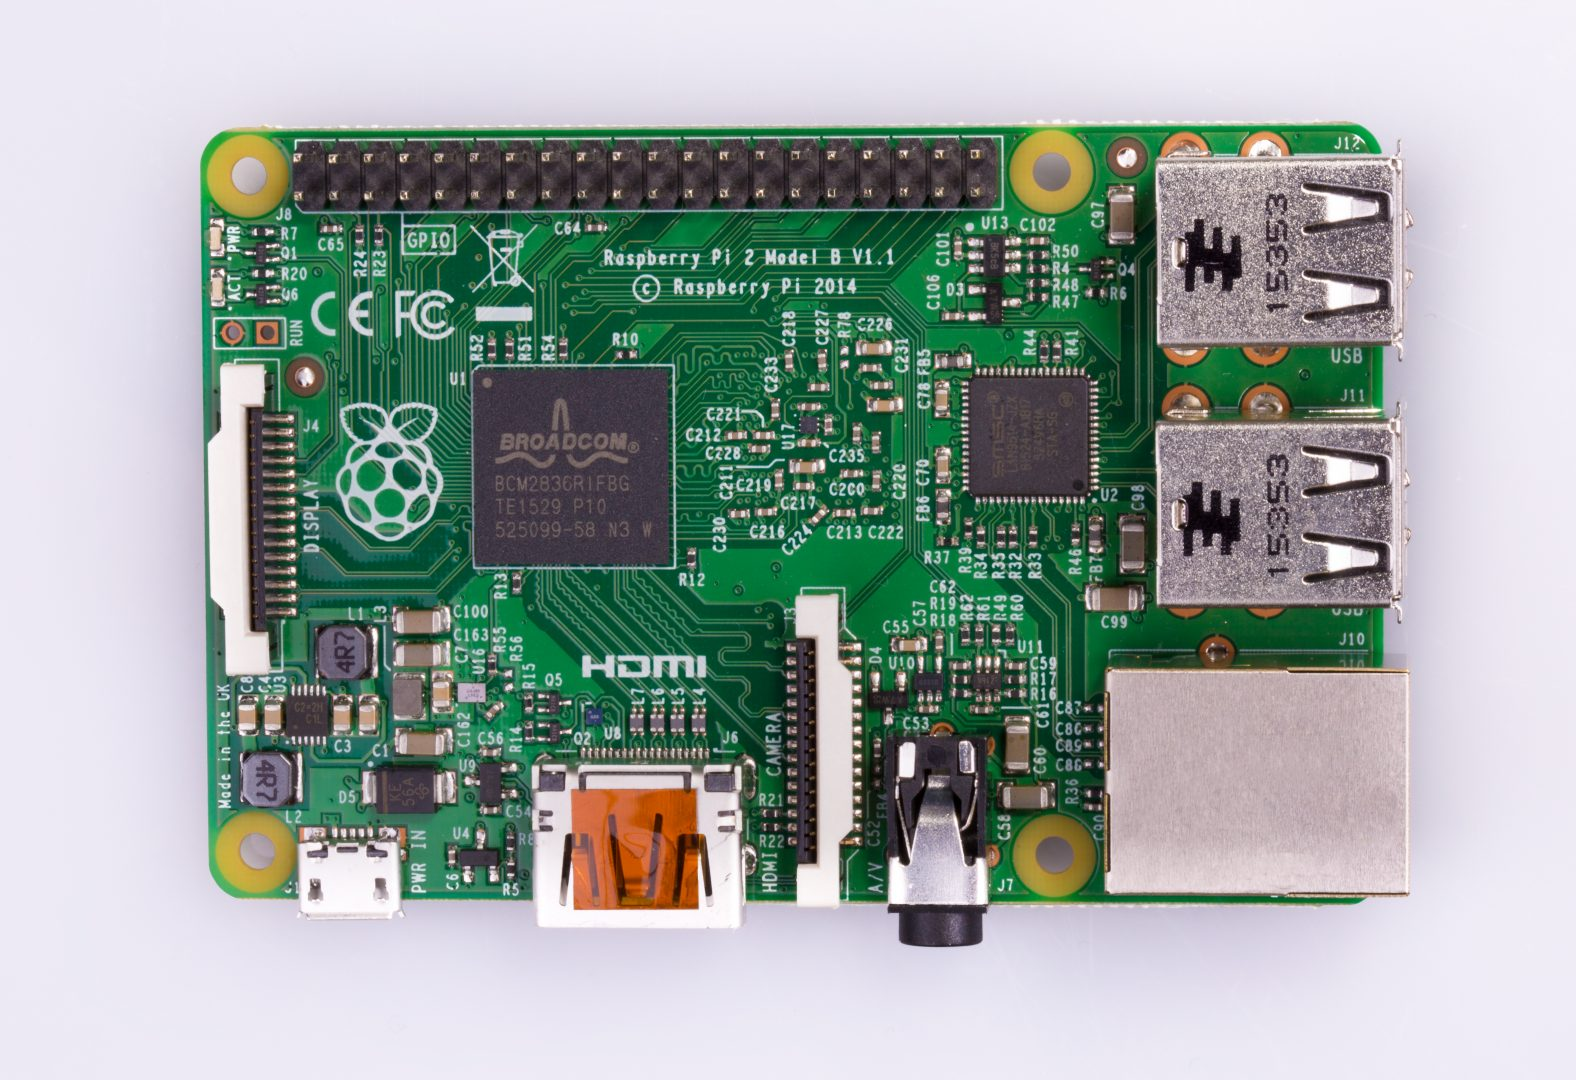 Raspberry Pi Model B Revision 20 Schematics Raspberrypi Installing Electrical For Your Basement 21 Things You39ll Need 2 Rh Org